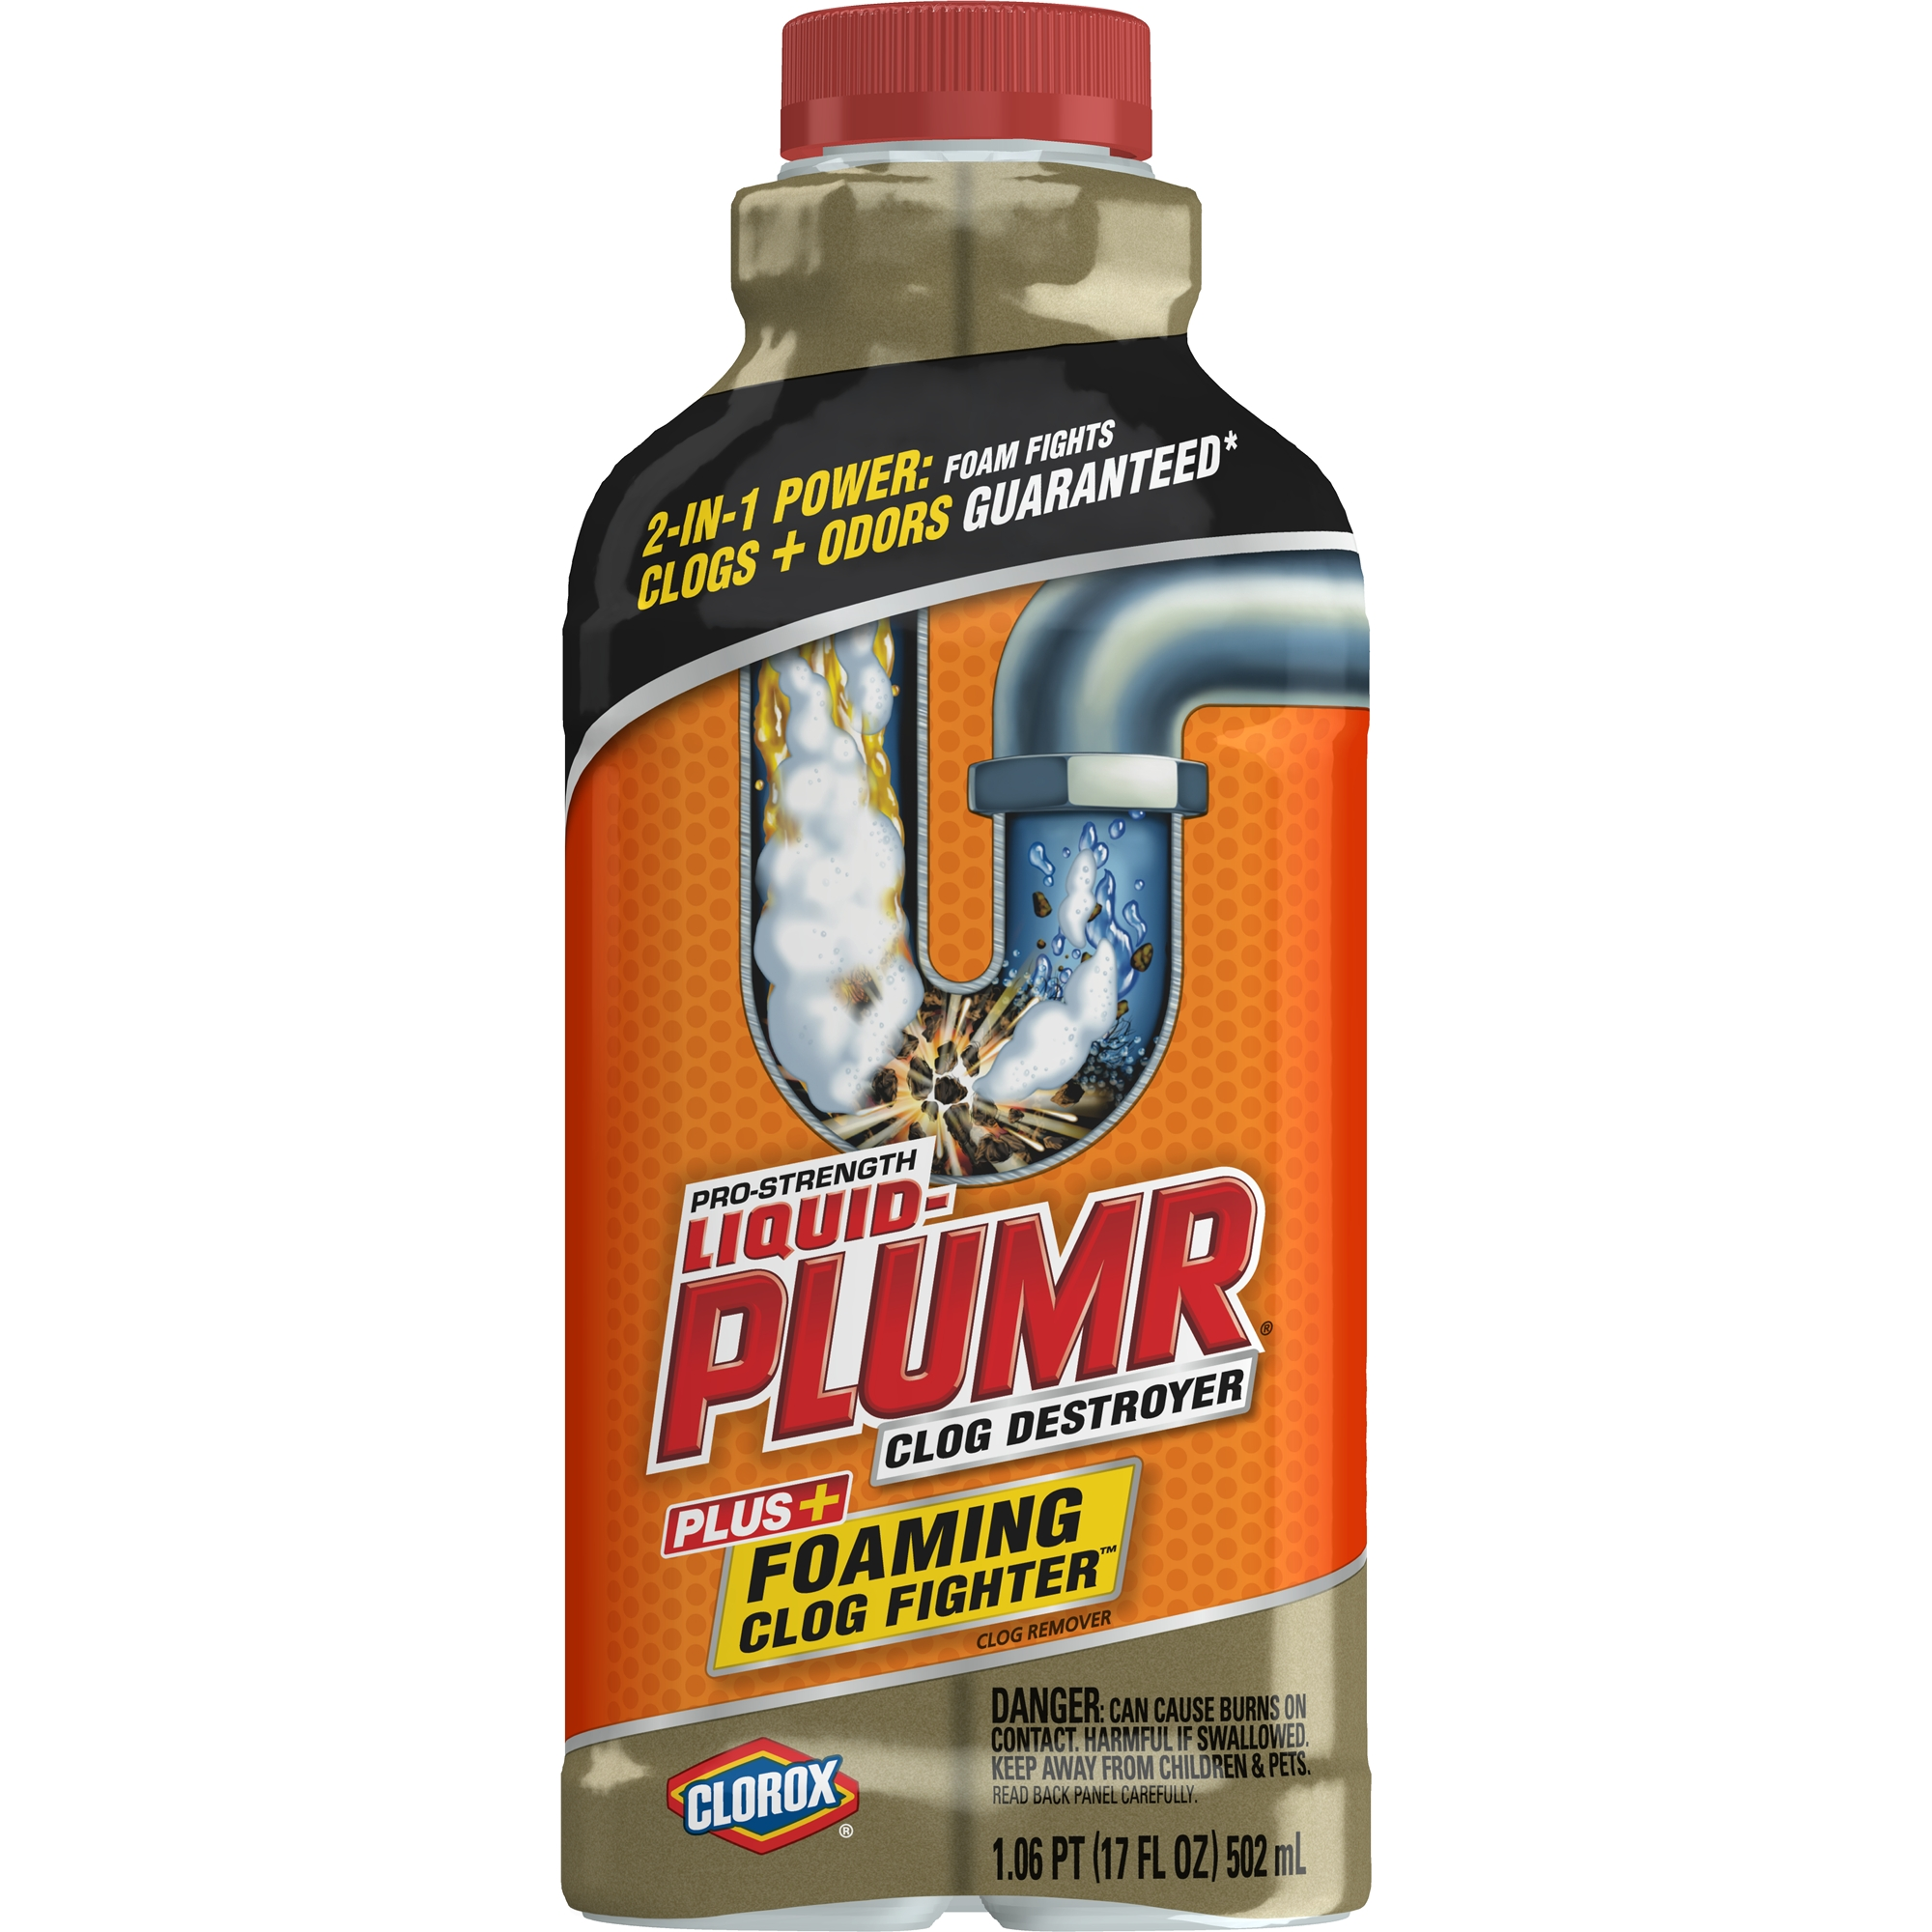 Liquid-Plumr Pro-Strength Clog Destroyer, Foaming Clog Fighter, 17 oz